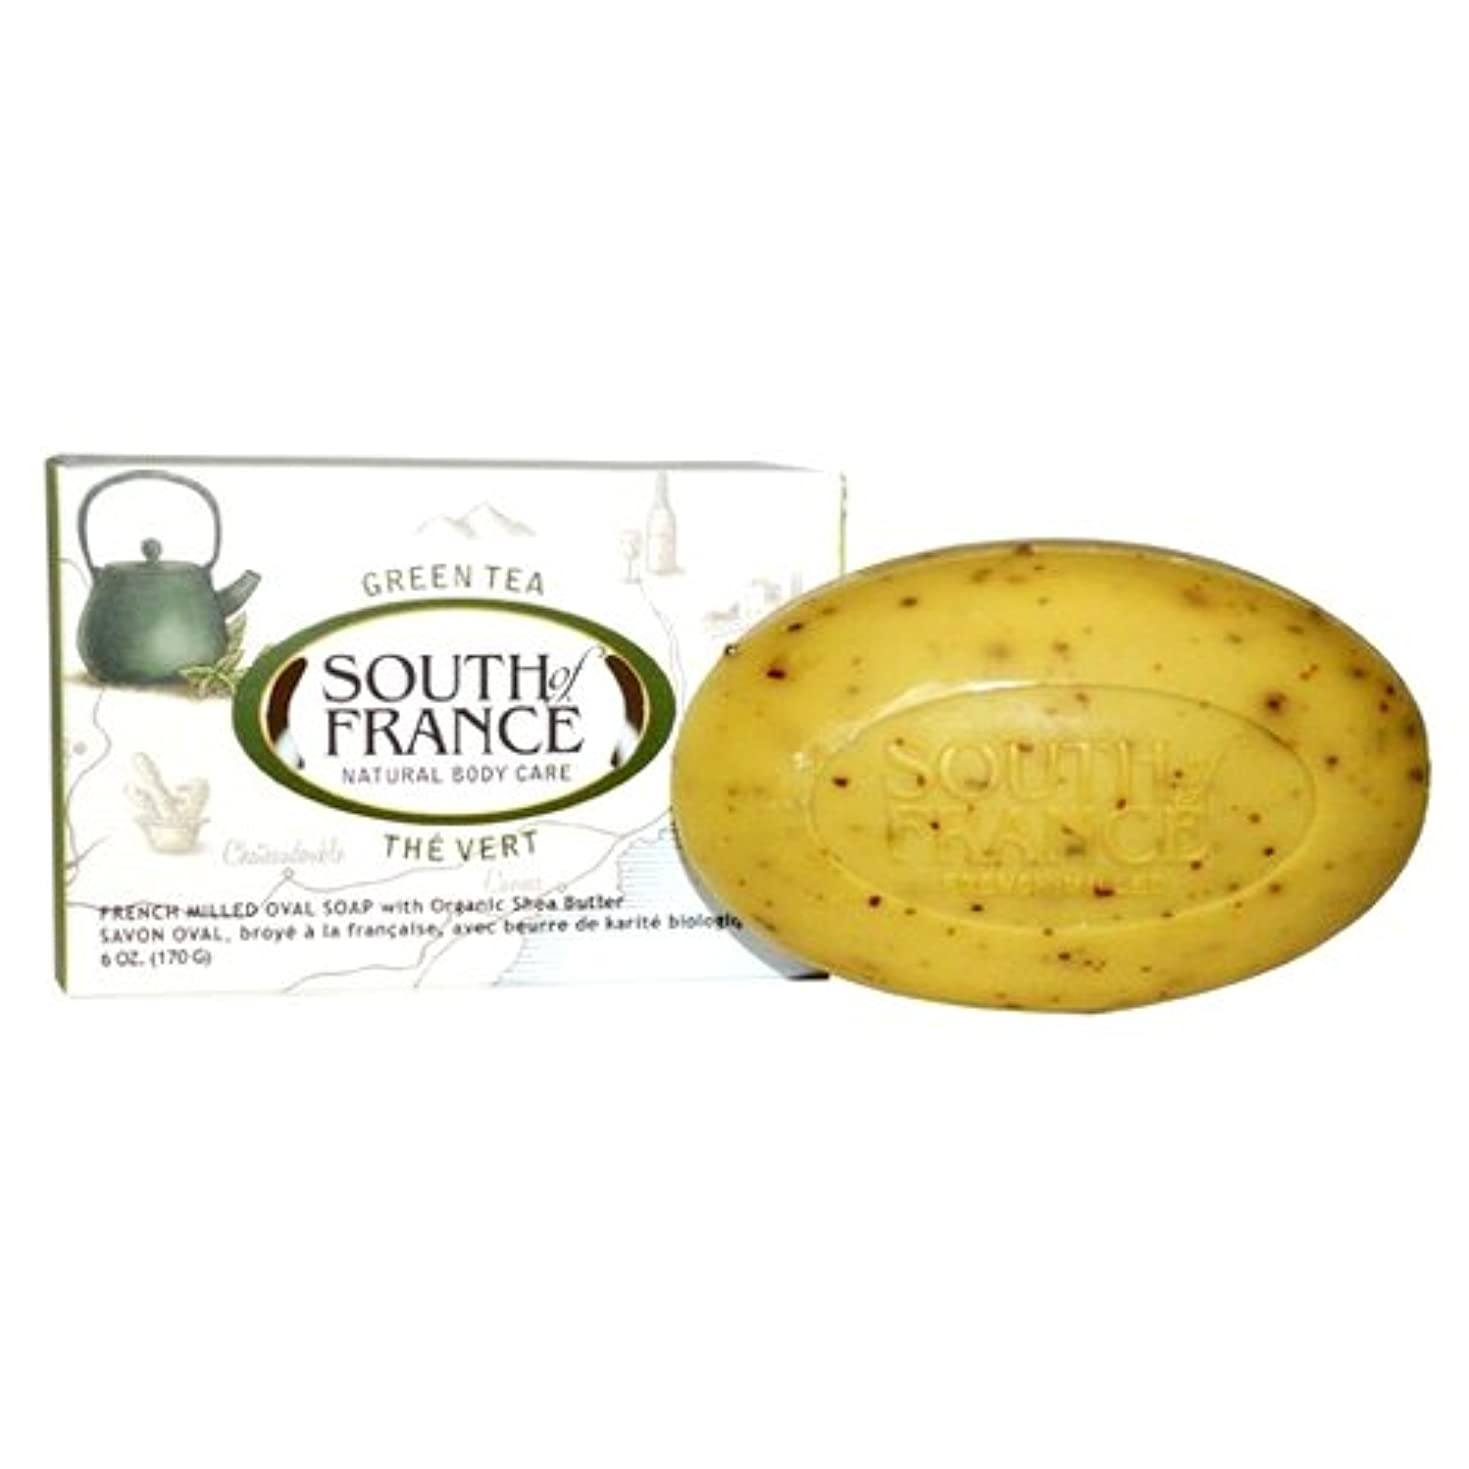 くしゃみ寄稿者債権者海外直送品South Of France Soaps Bar Soap Oval, Green Tea 6 Oz